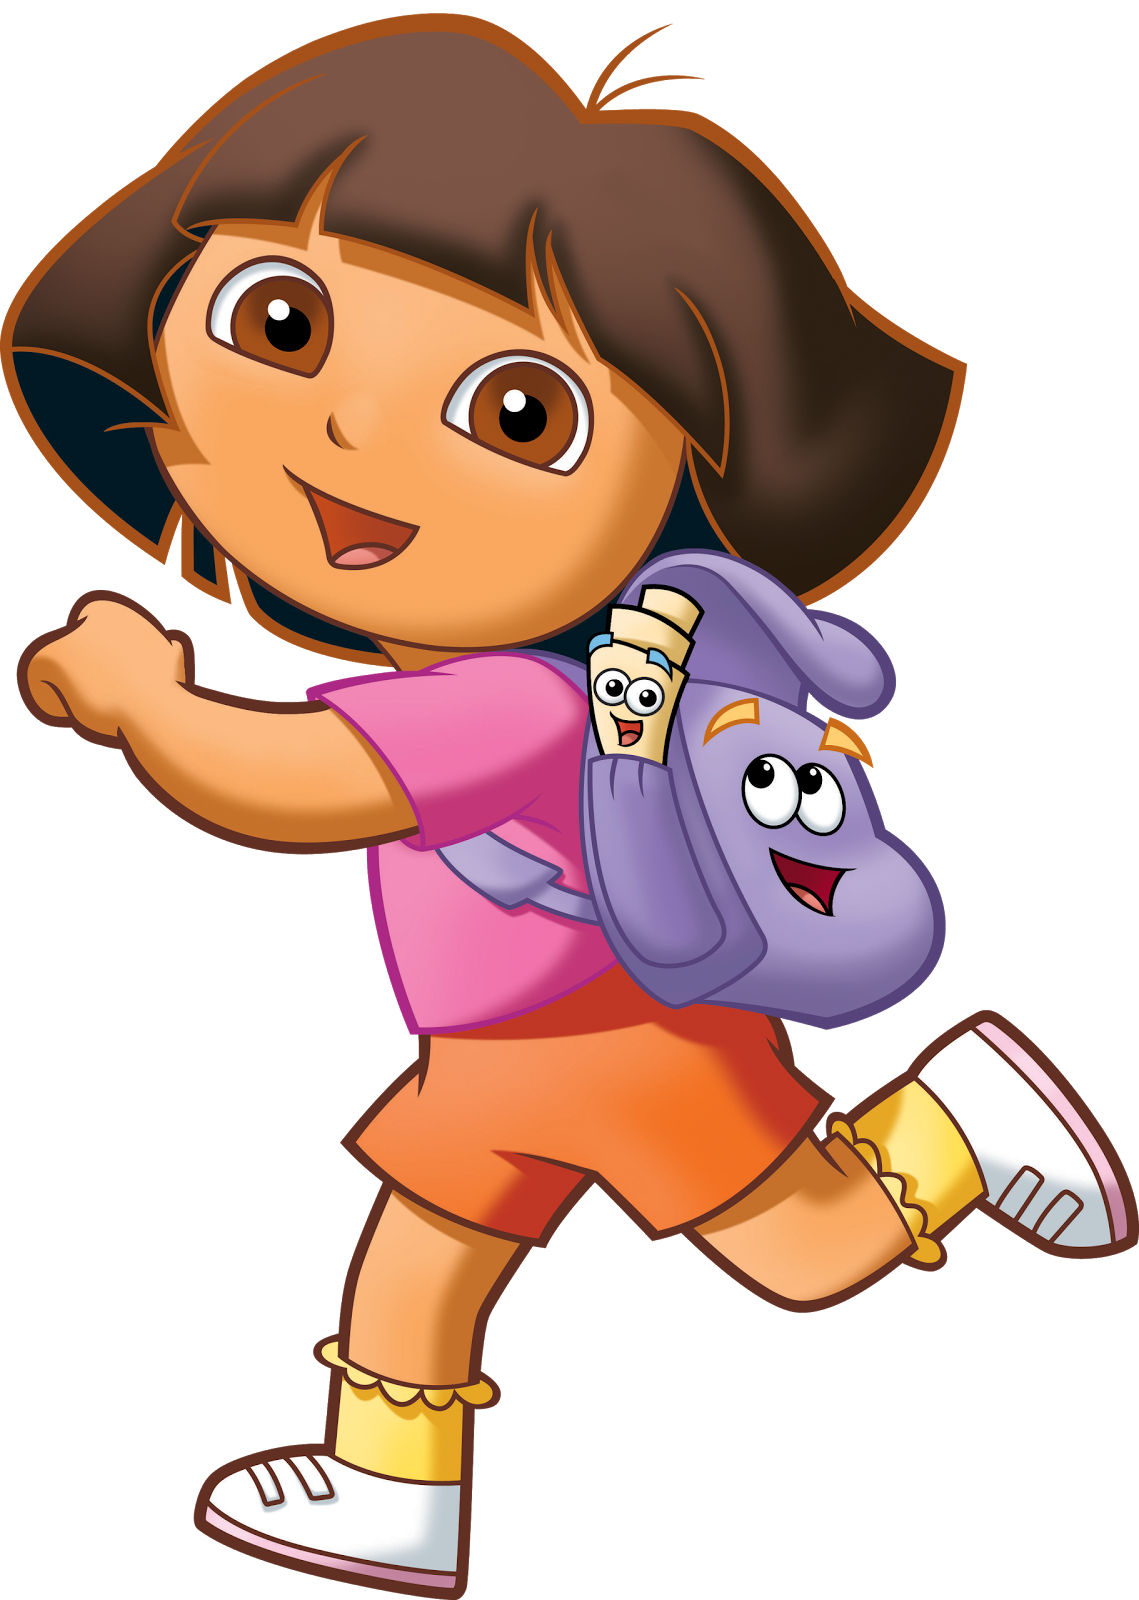 Cartoon characters the explorer. Clipart face dora